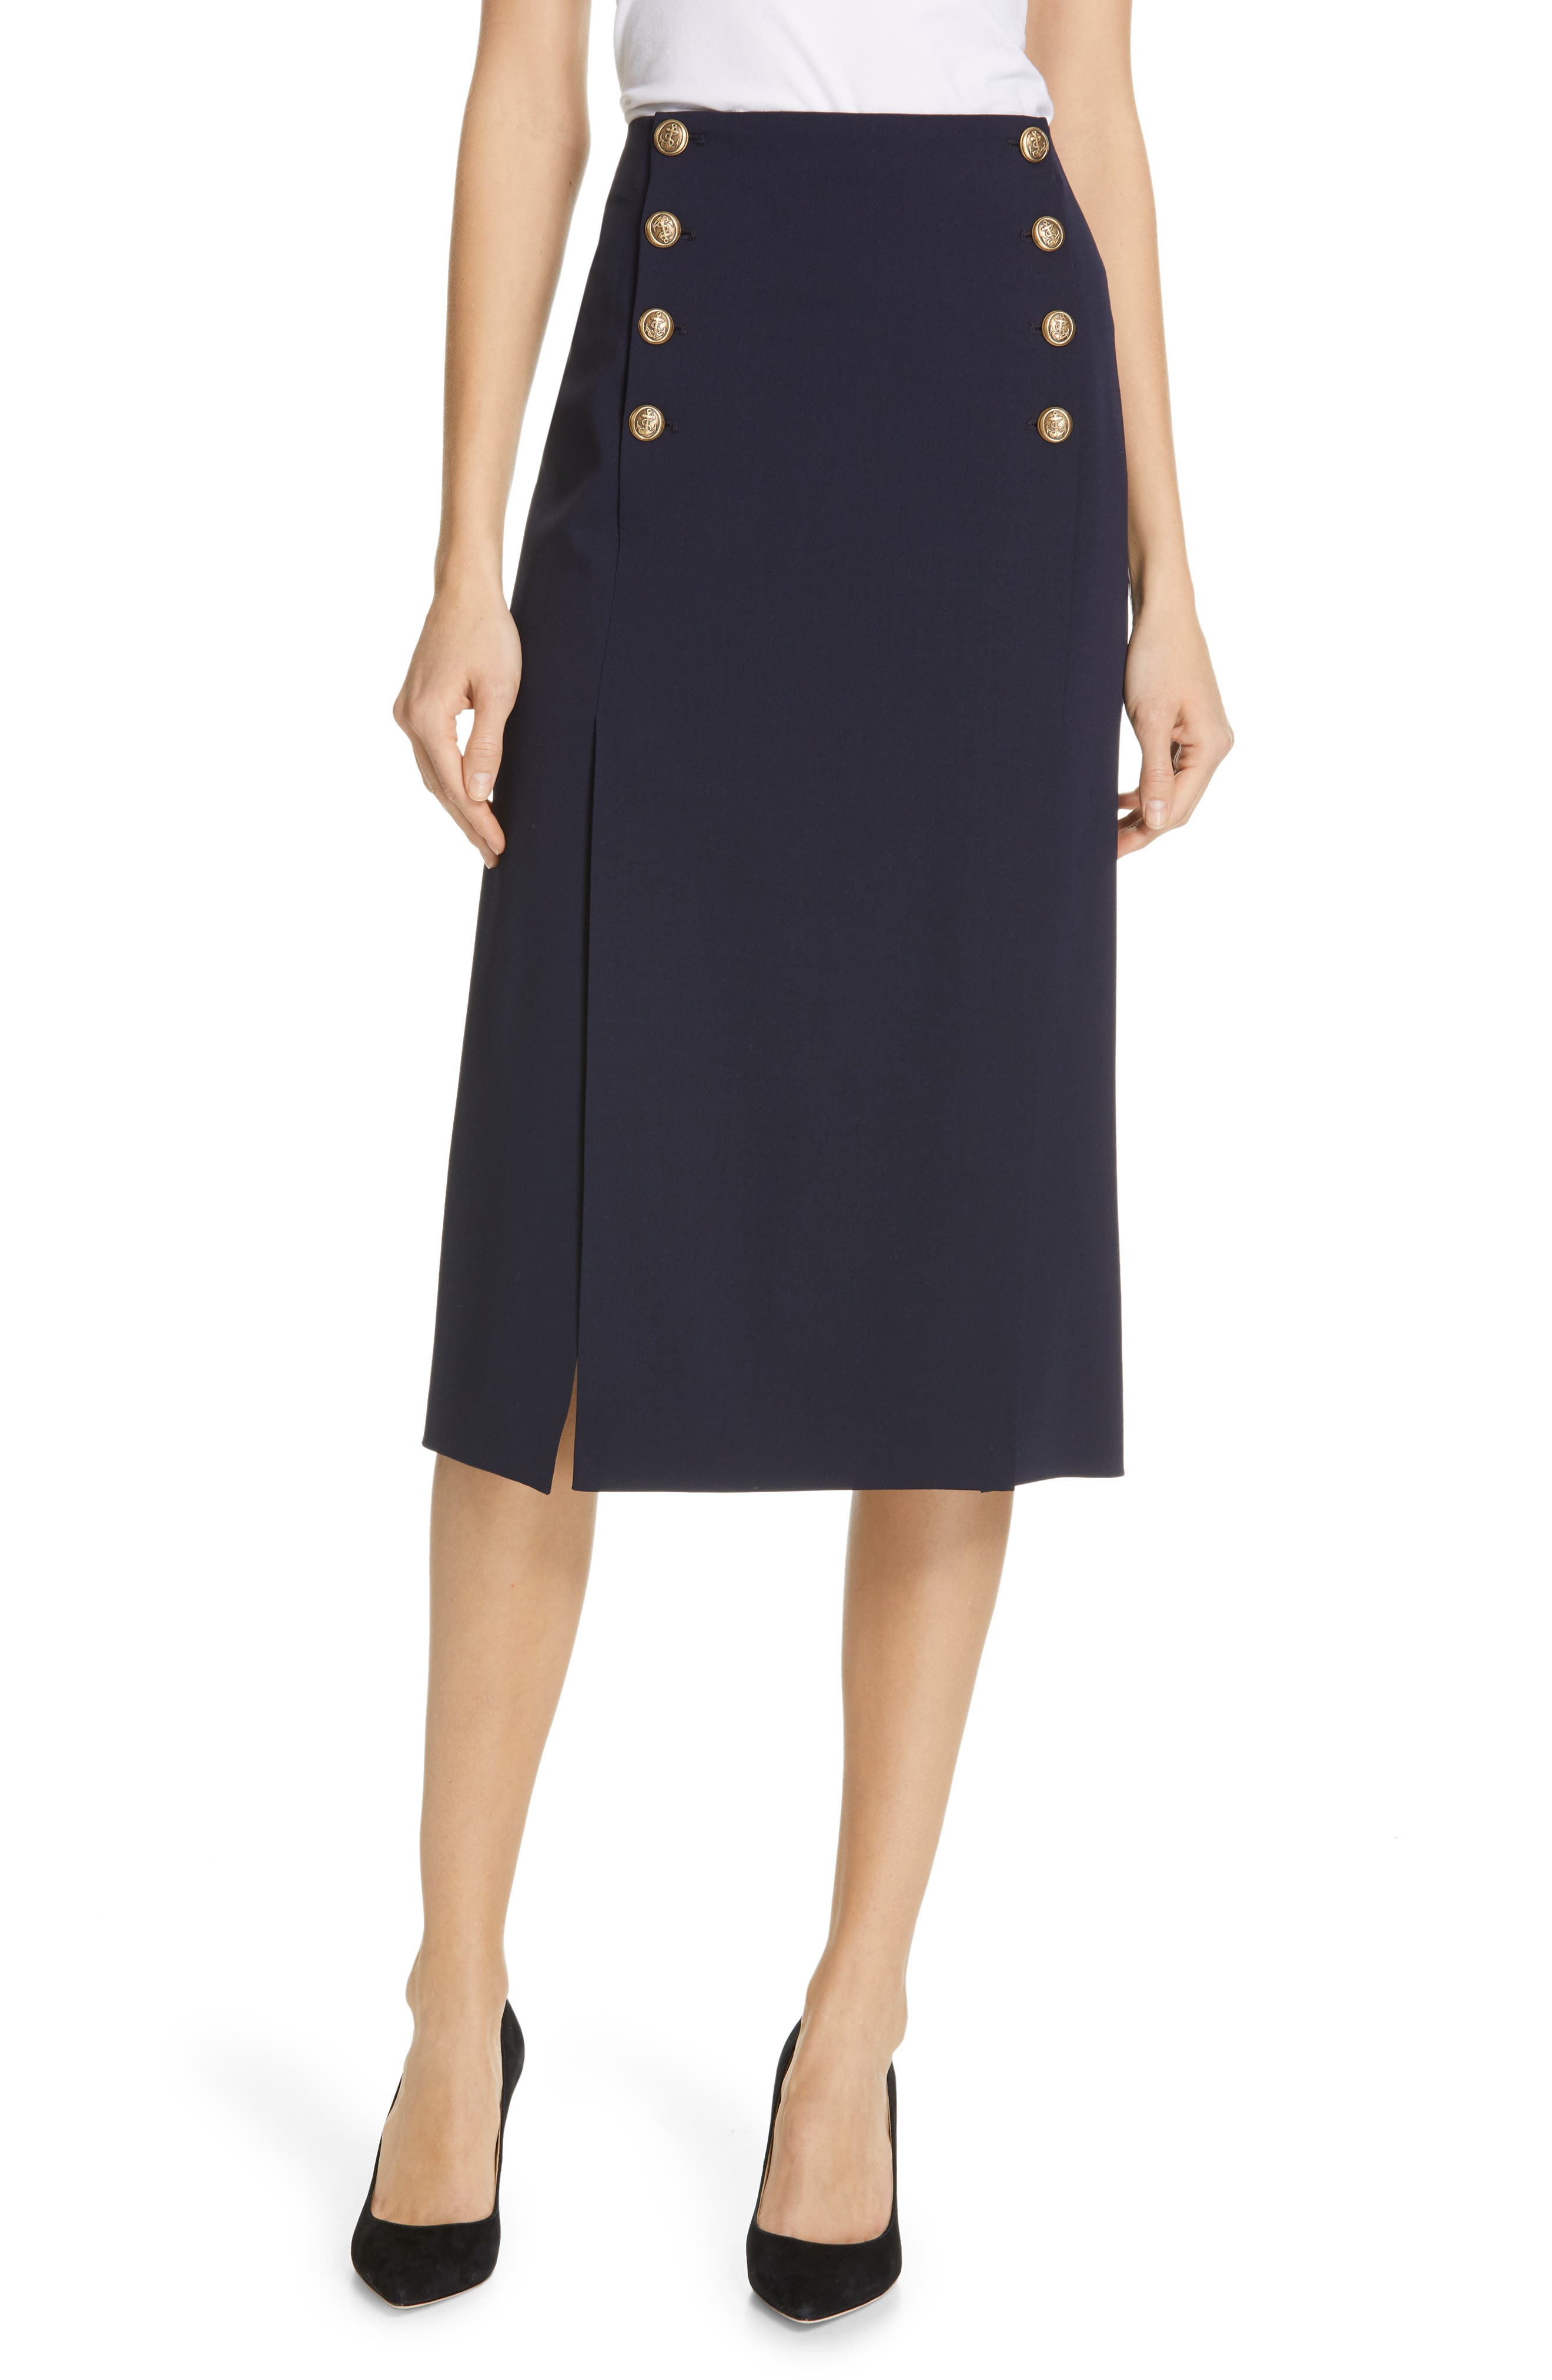 POLO RALPH LAUREN, A-Line Skirt, Main thumbnail 1, color, NAVY